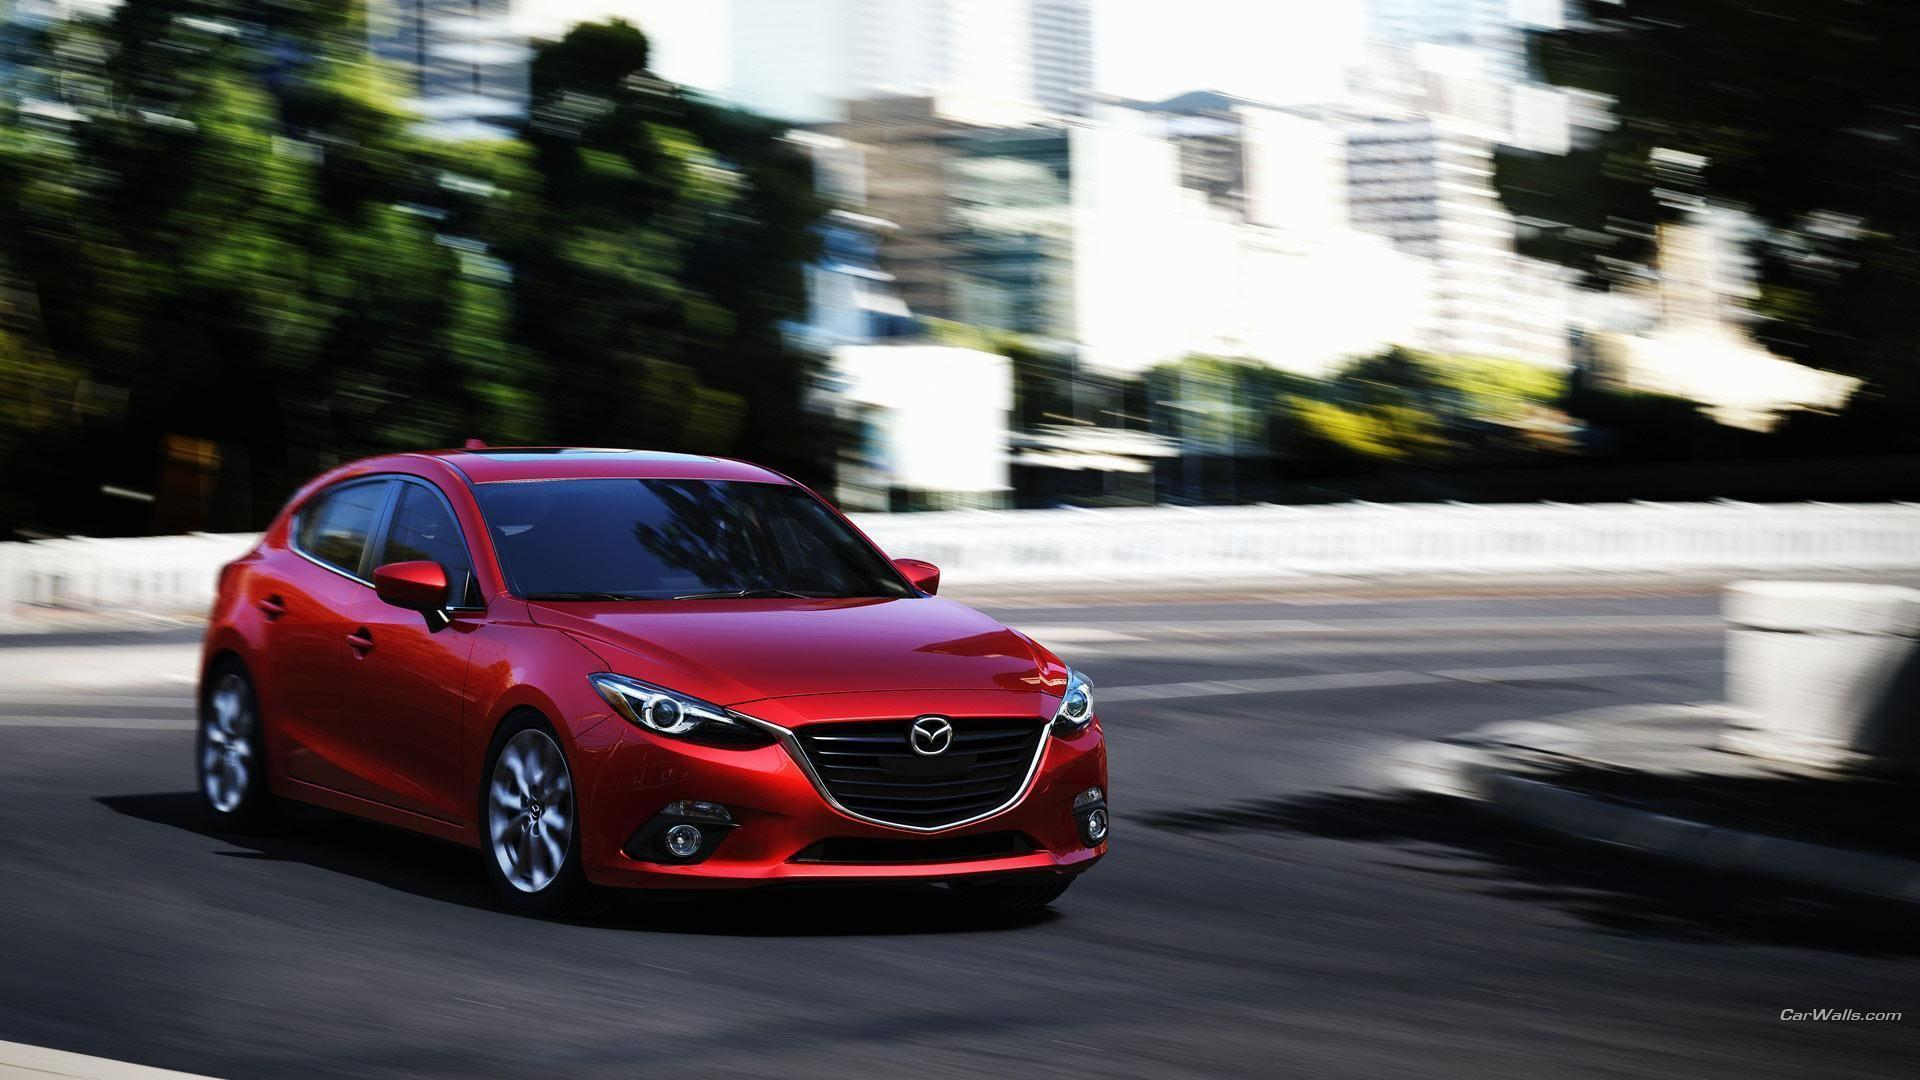 2014 Mazda 3 Wallpapers HD Download